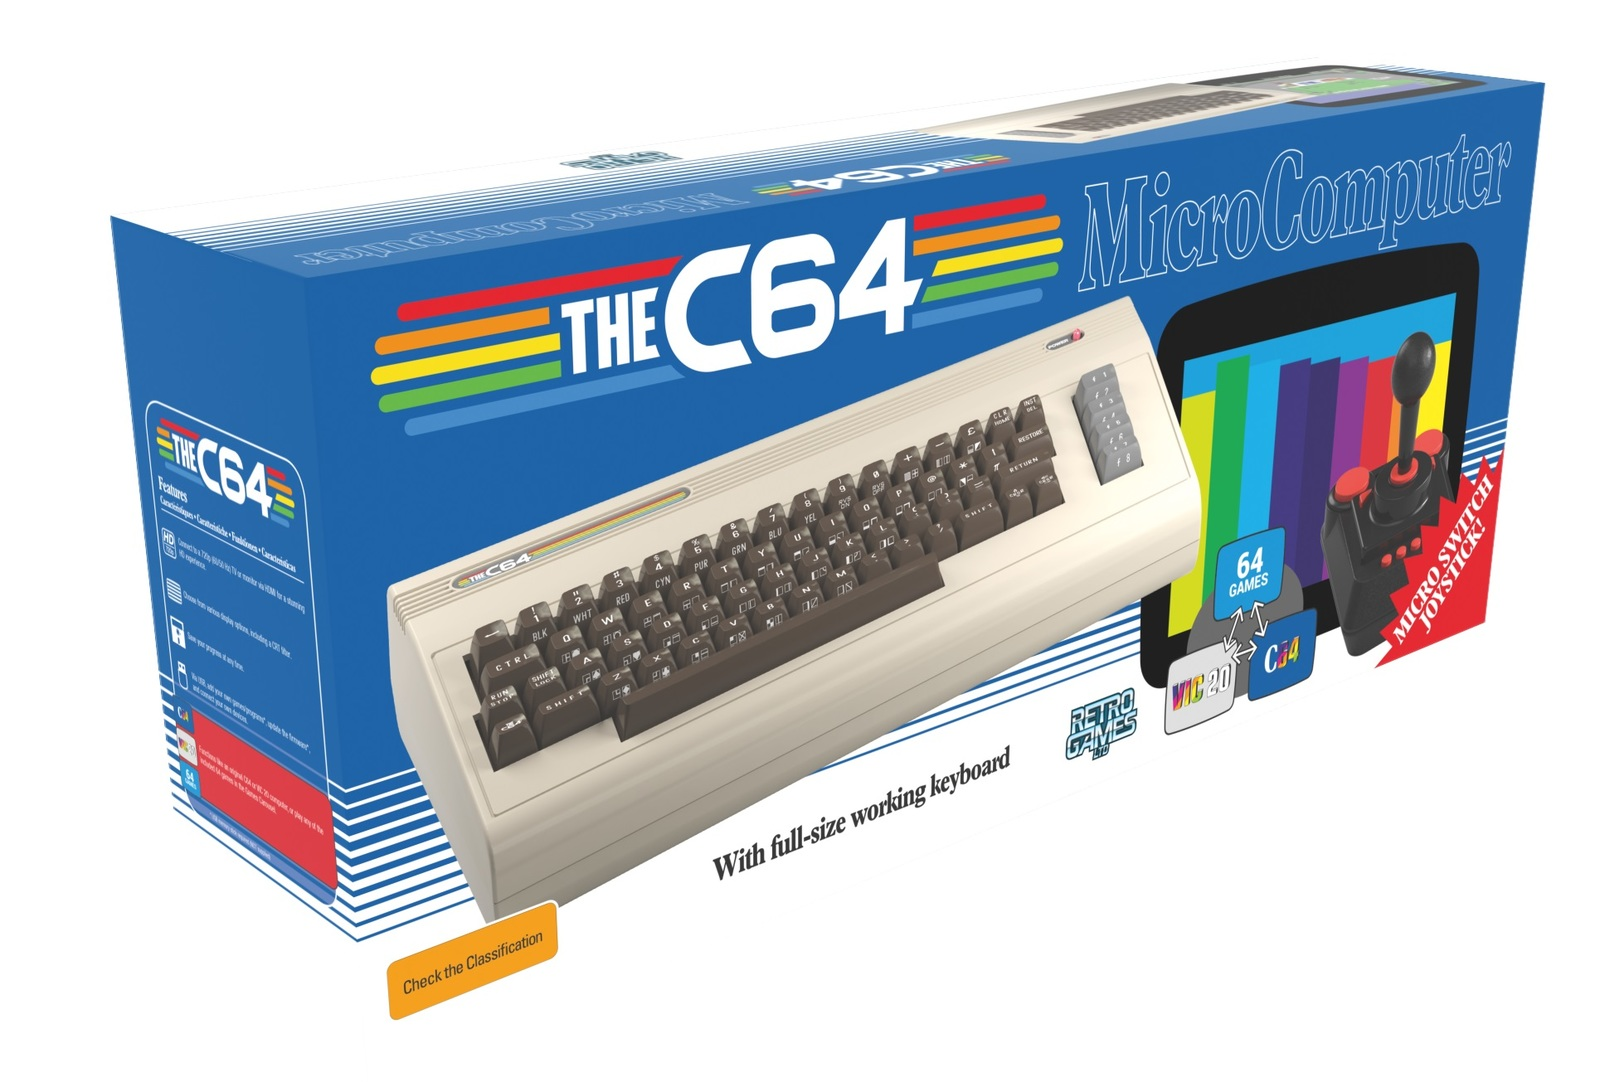 THEC64 Full Size Computer for  image